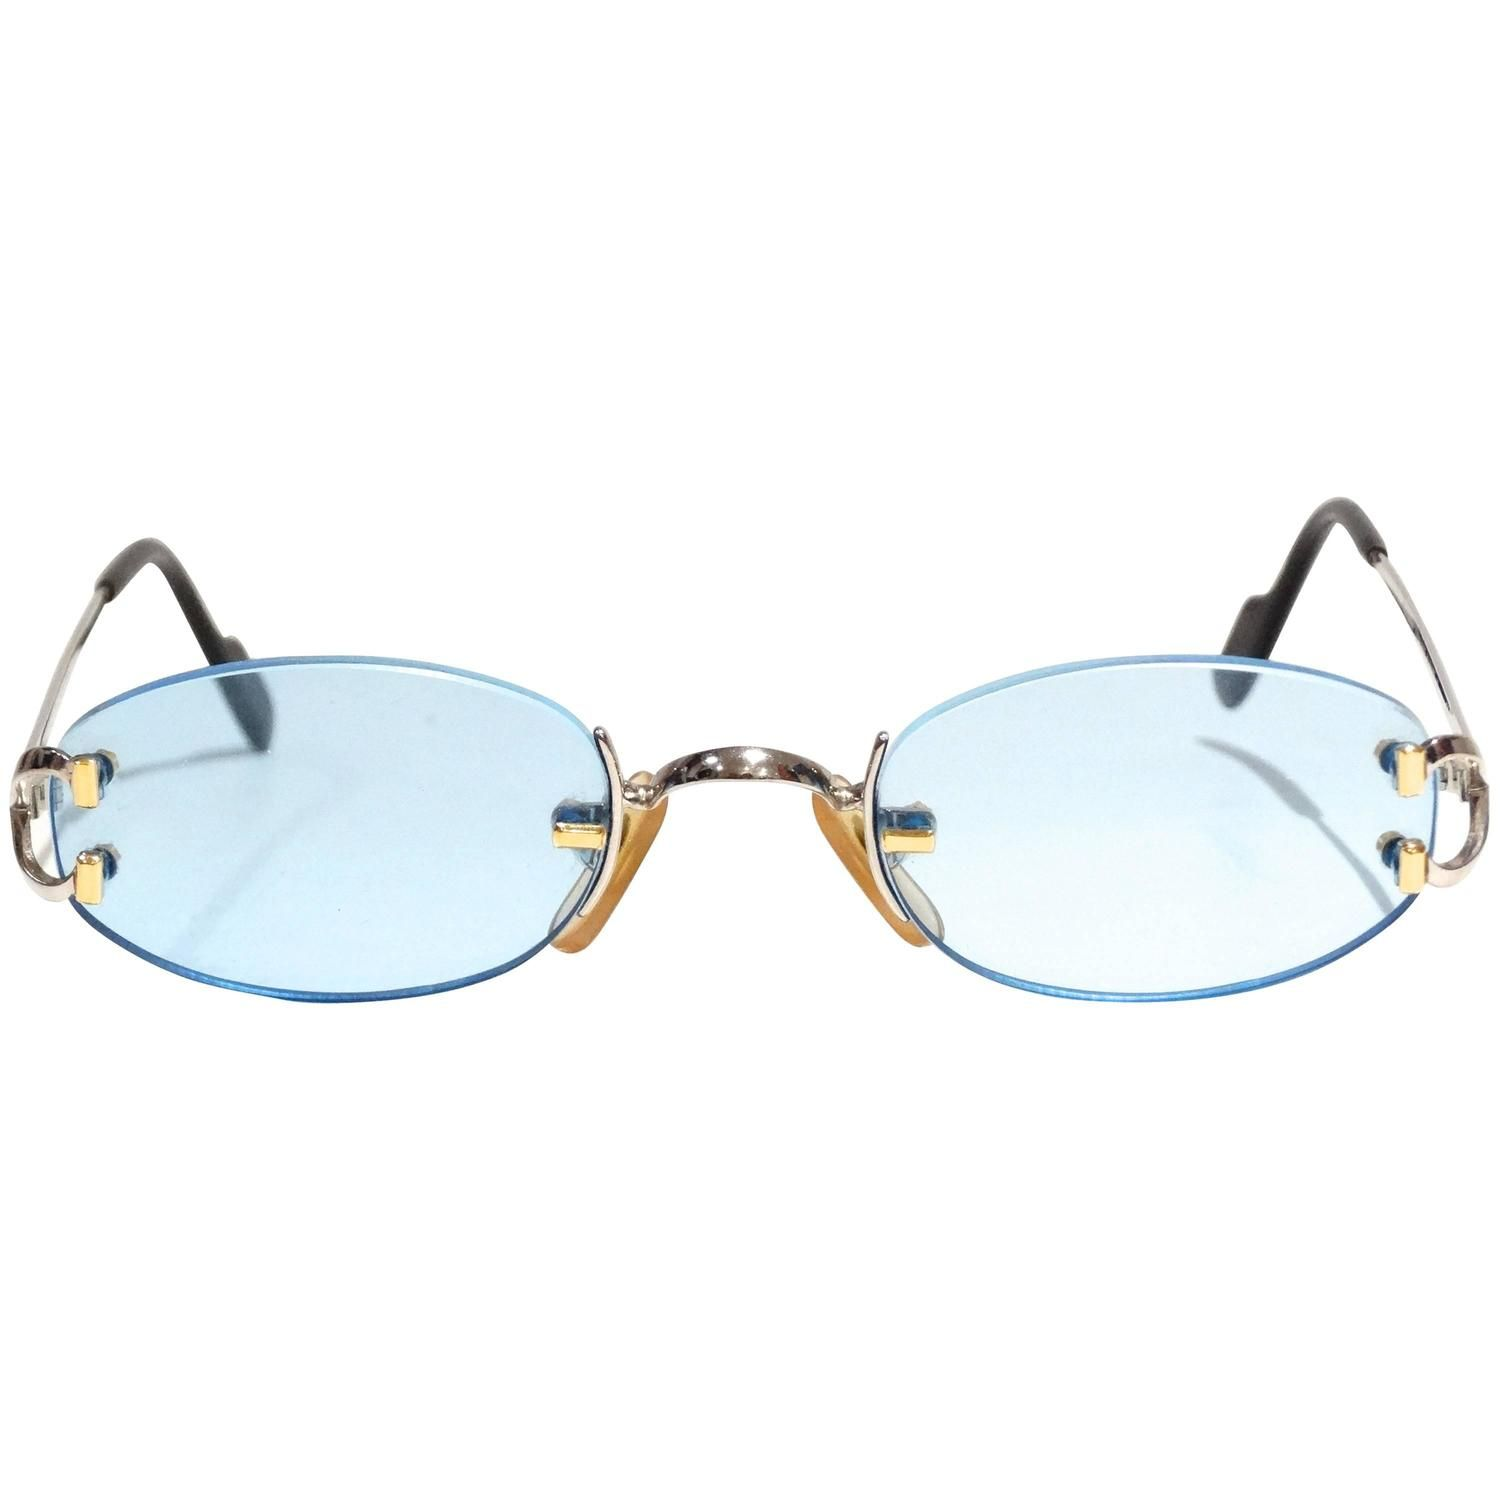 c1fa0d6496 1990s Rimless Cartier Blue Lens Sunglasses